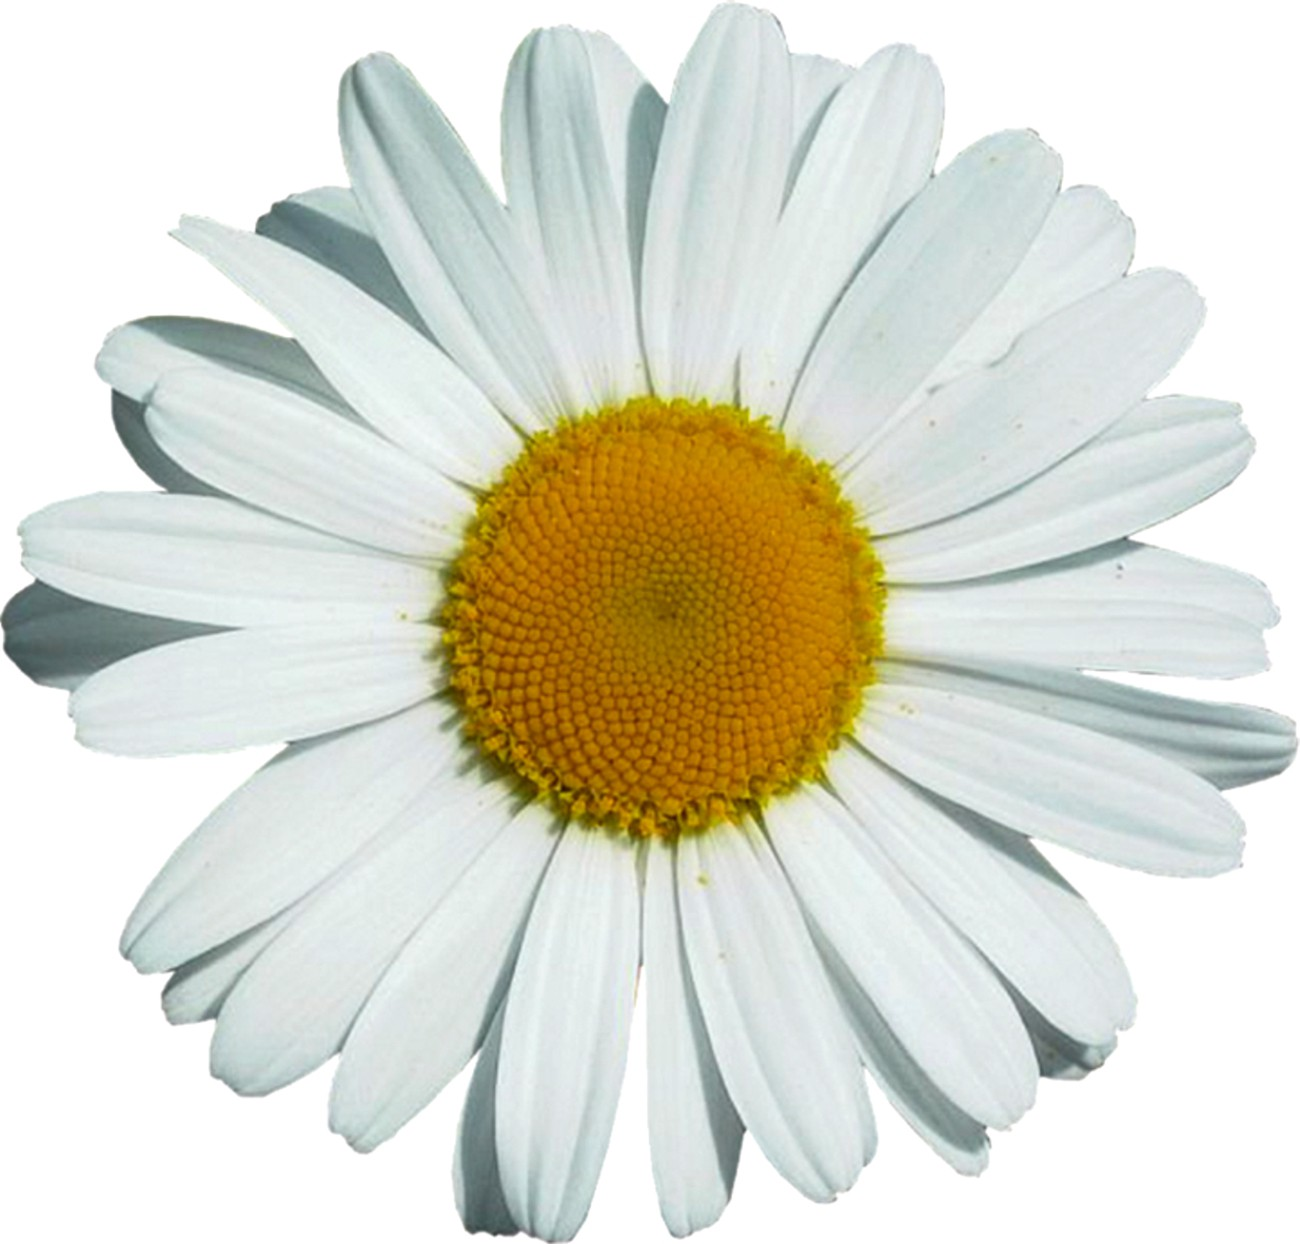 Sticker Oxeye Daisy Flower 300 x 300 mm – Bild 1